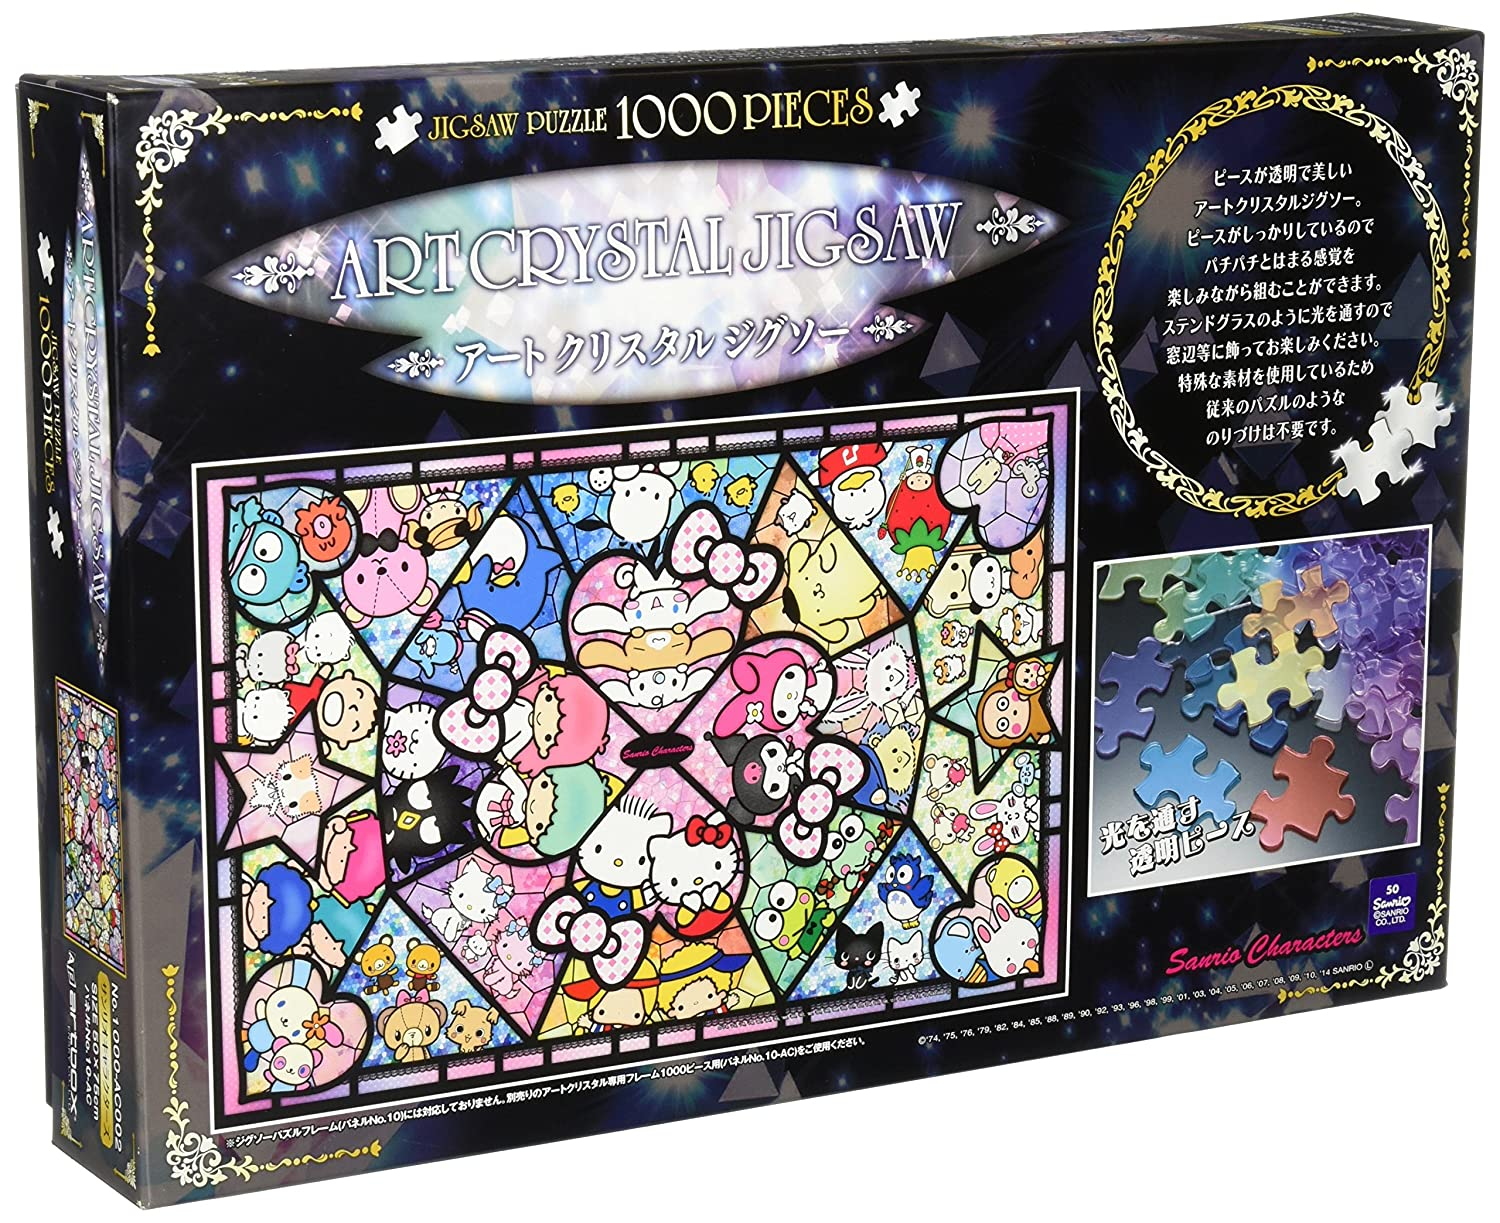 Amazon.com: Ensky Sanrio Characters Stained Glass Art Crystal Jigsaw ...